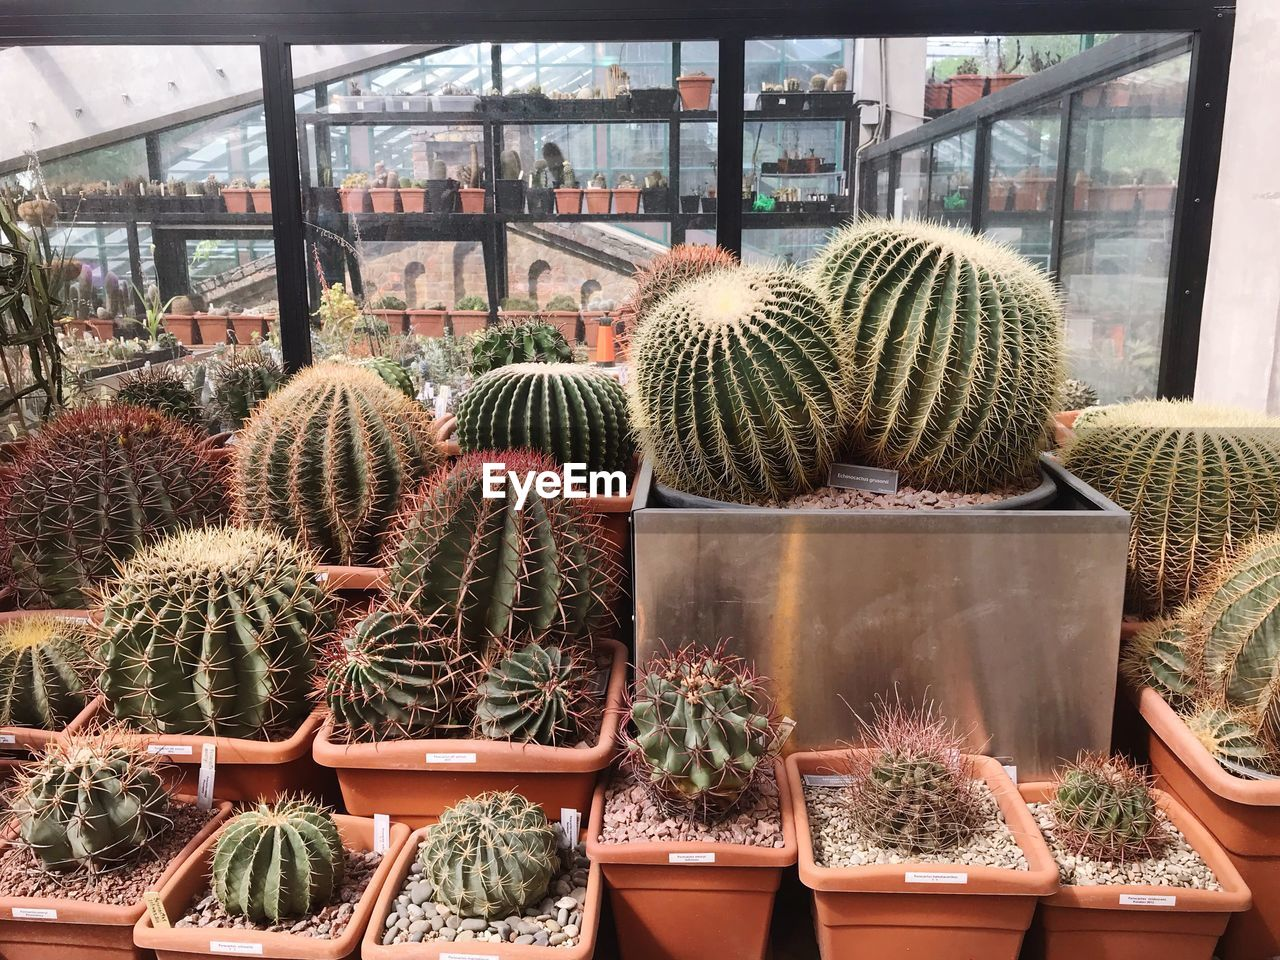 succulent plant, cactus, plant, thorn, growth, barrel cactus, potted plant, day, greenhouse, nature, window, indoors, spiked, no people, choice, variation, sharp, botany, green color, plant nursery, flower pot